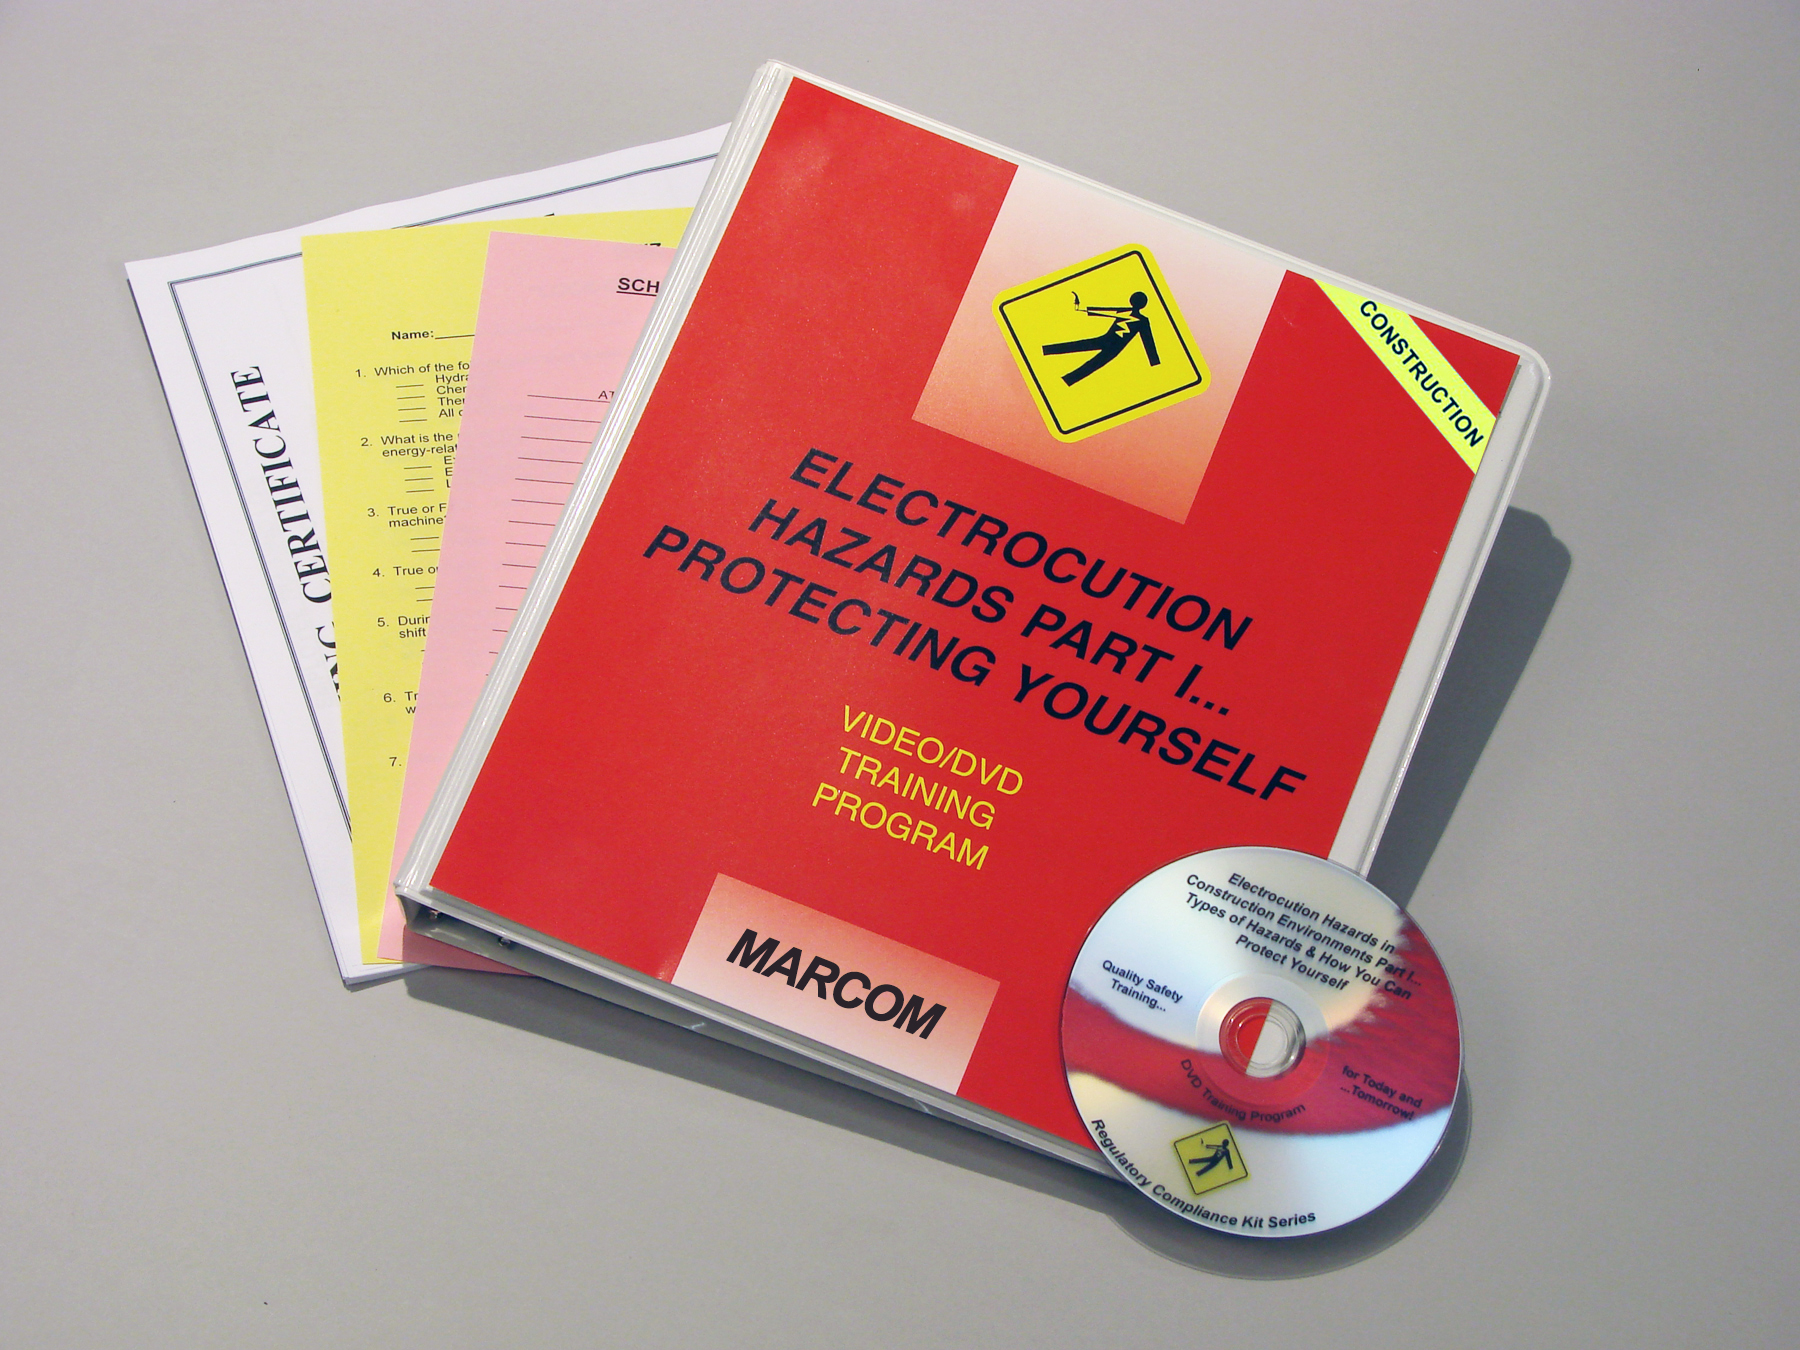 The first in a two-part series on electrocution hazards, MARCOM's Electrocution Hazards Part I: Worksite Safety DVD Program discusses the electrical hazards that can be found on a job site, the OSHA standards that have been established to protect workers from them, and what employees should do to avoid accidents and injuries involving electricity. The DVD program comes with a comprehensive leader's guide, reproducible scheduling & attendance form, employee quiz, training certificate and training log.